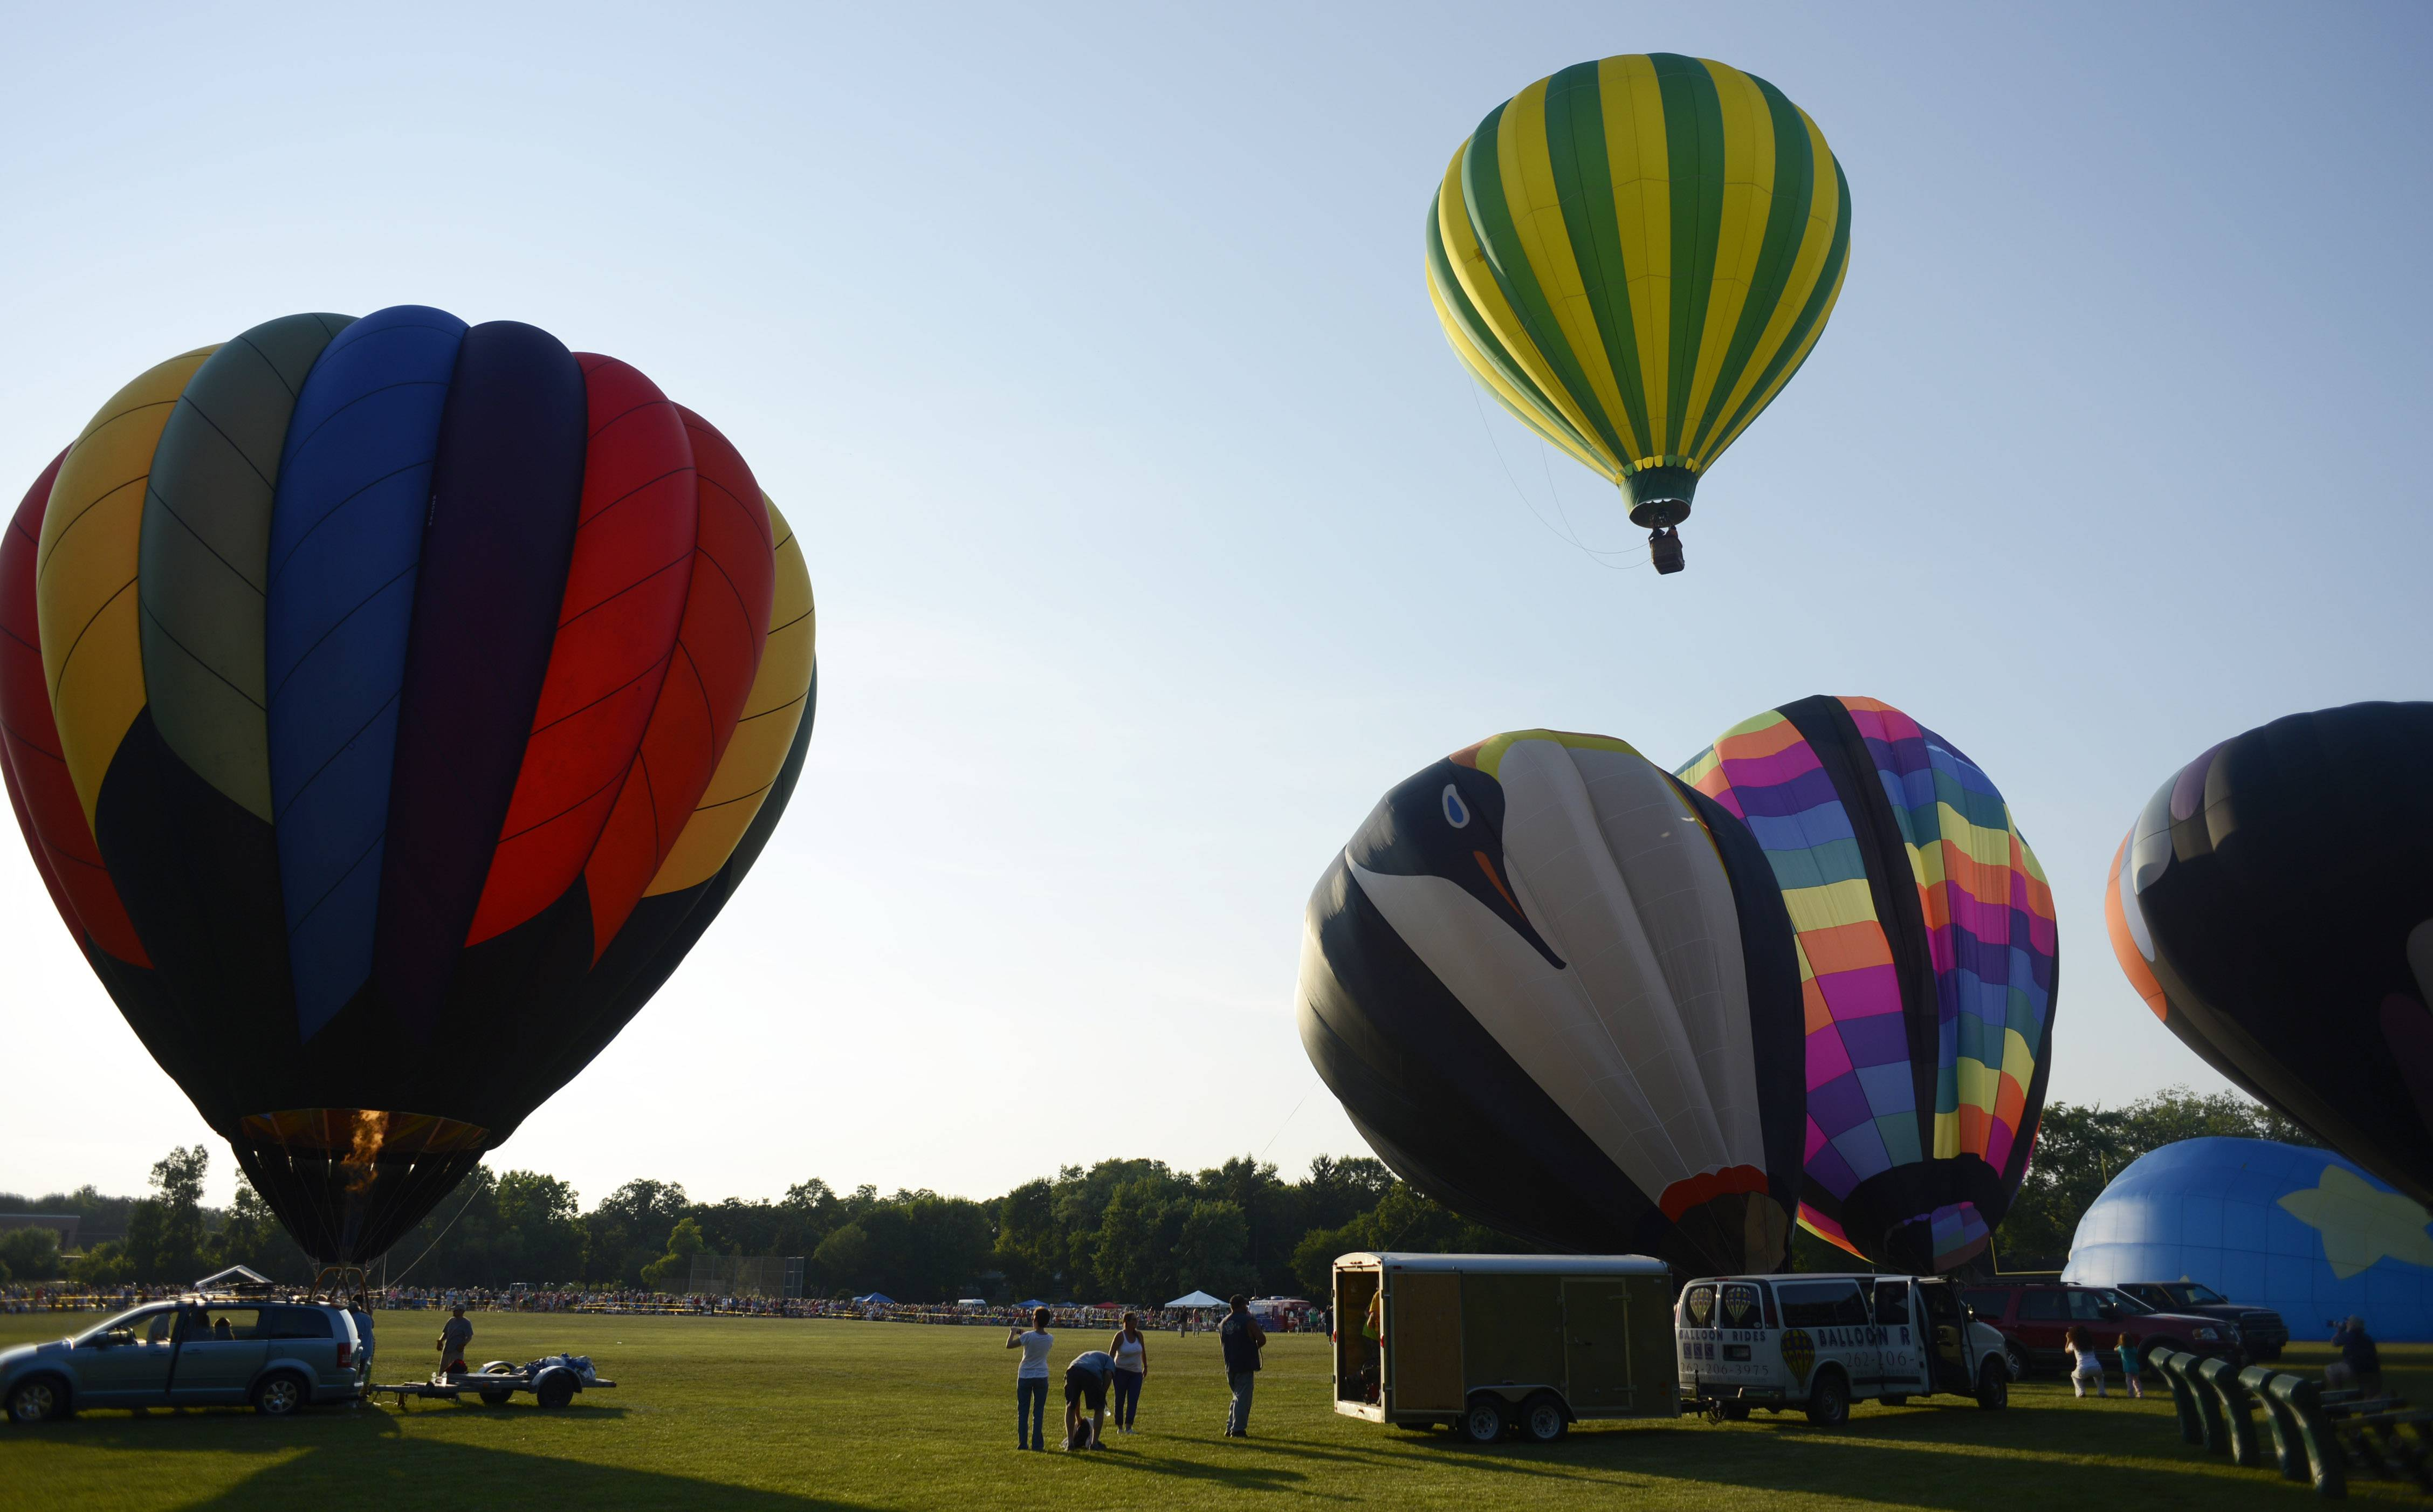 Balloons are launched from Grayslake's Central Park during a previous Color Aloft Balloon Festival. This year's festival will be from 4-9 p.m. Saturday, Aug. 27.